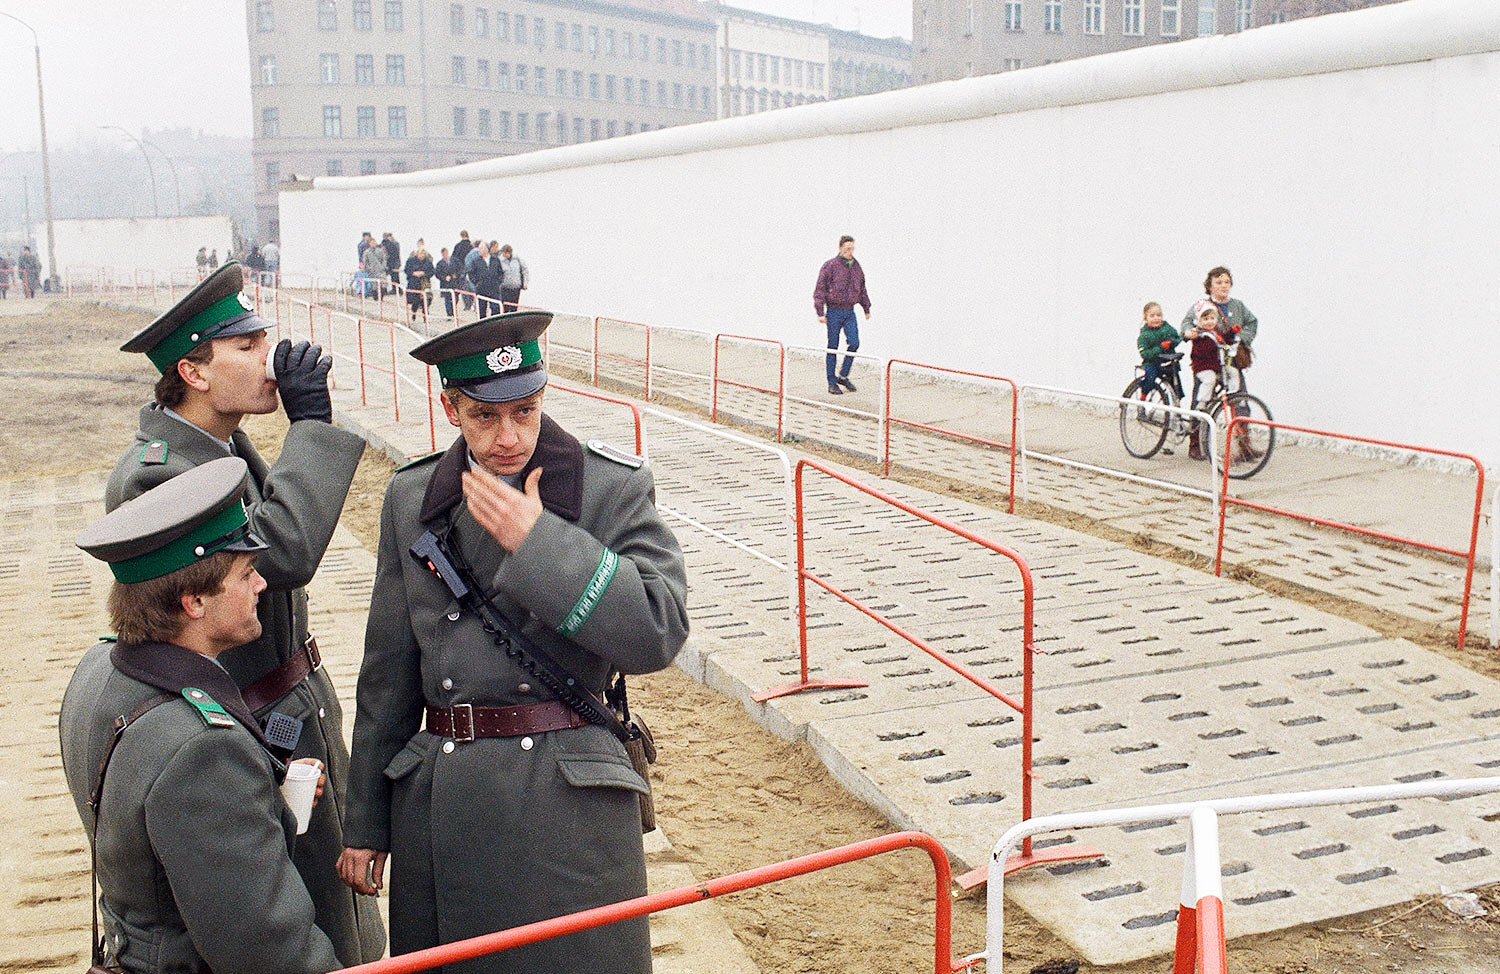 East German border guards have a coffee break atop of platform while looking down to just a few East German citizens moving into the west at Bernauer Strasse passage, in Berlin, Nov. 13, 1989. (AP Photo/Jockel Finck)